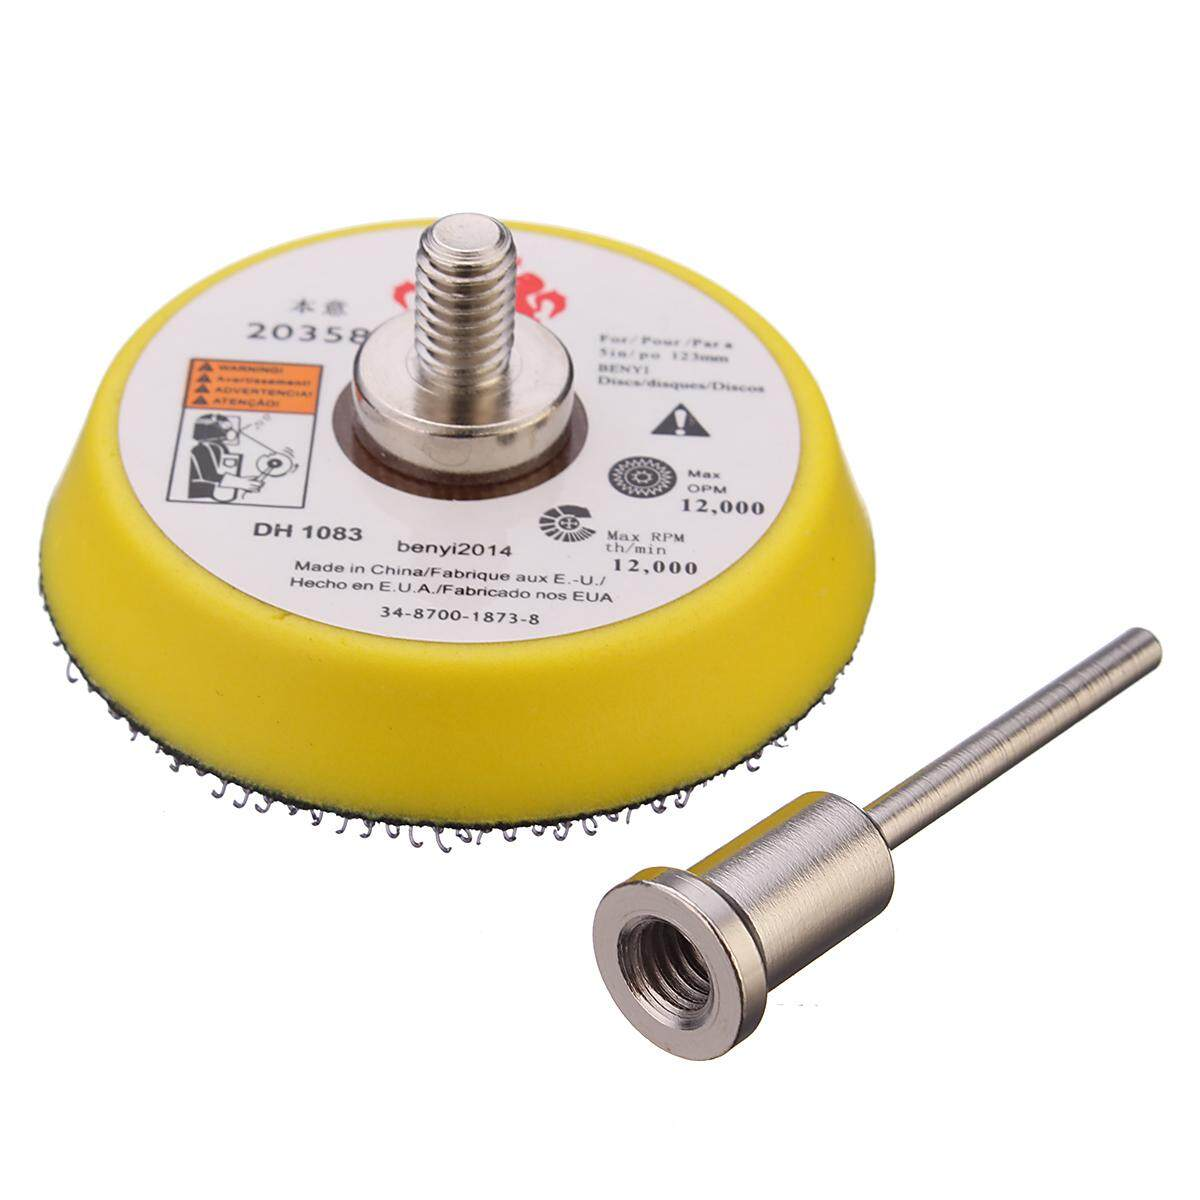 【Free Shipping + Super Deal + Limited Offer】2 inch Sander Disc Sanding Polishing Pad Backer Plate 3mm Shank fit for Dremel Electric Grinder Rotary Tool